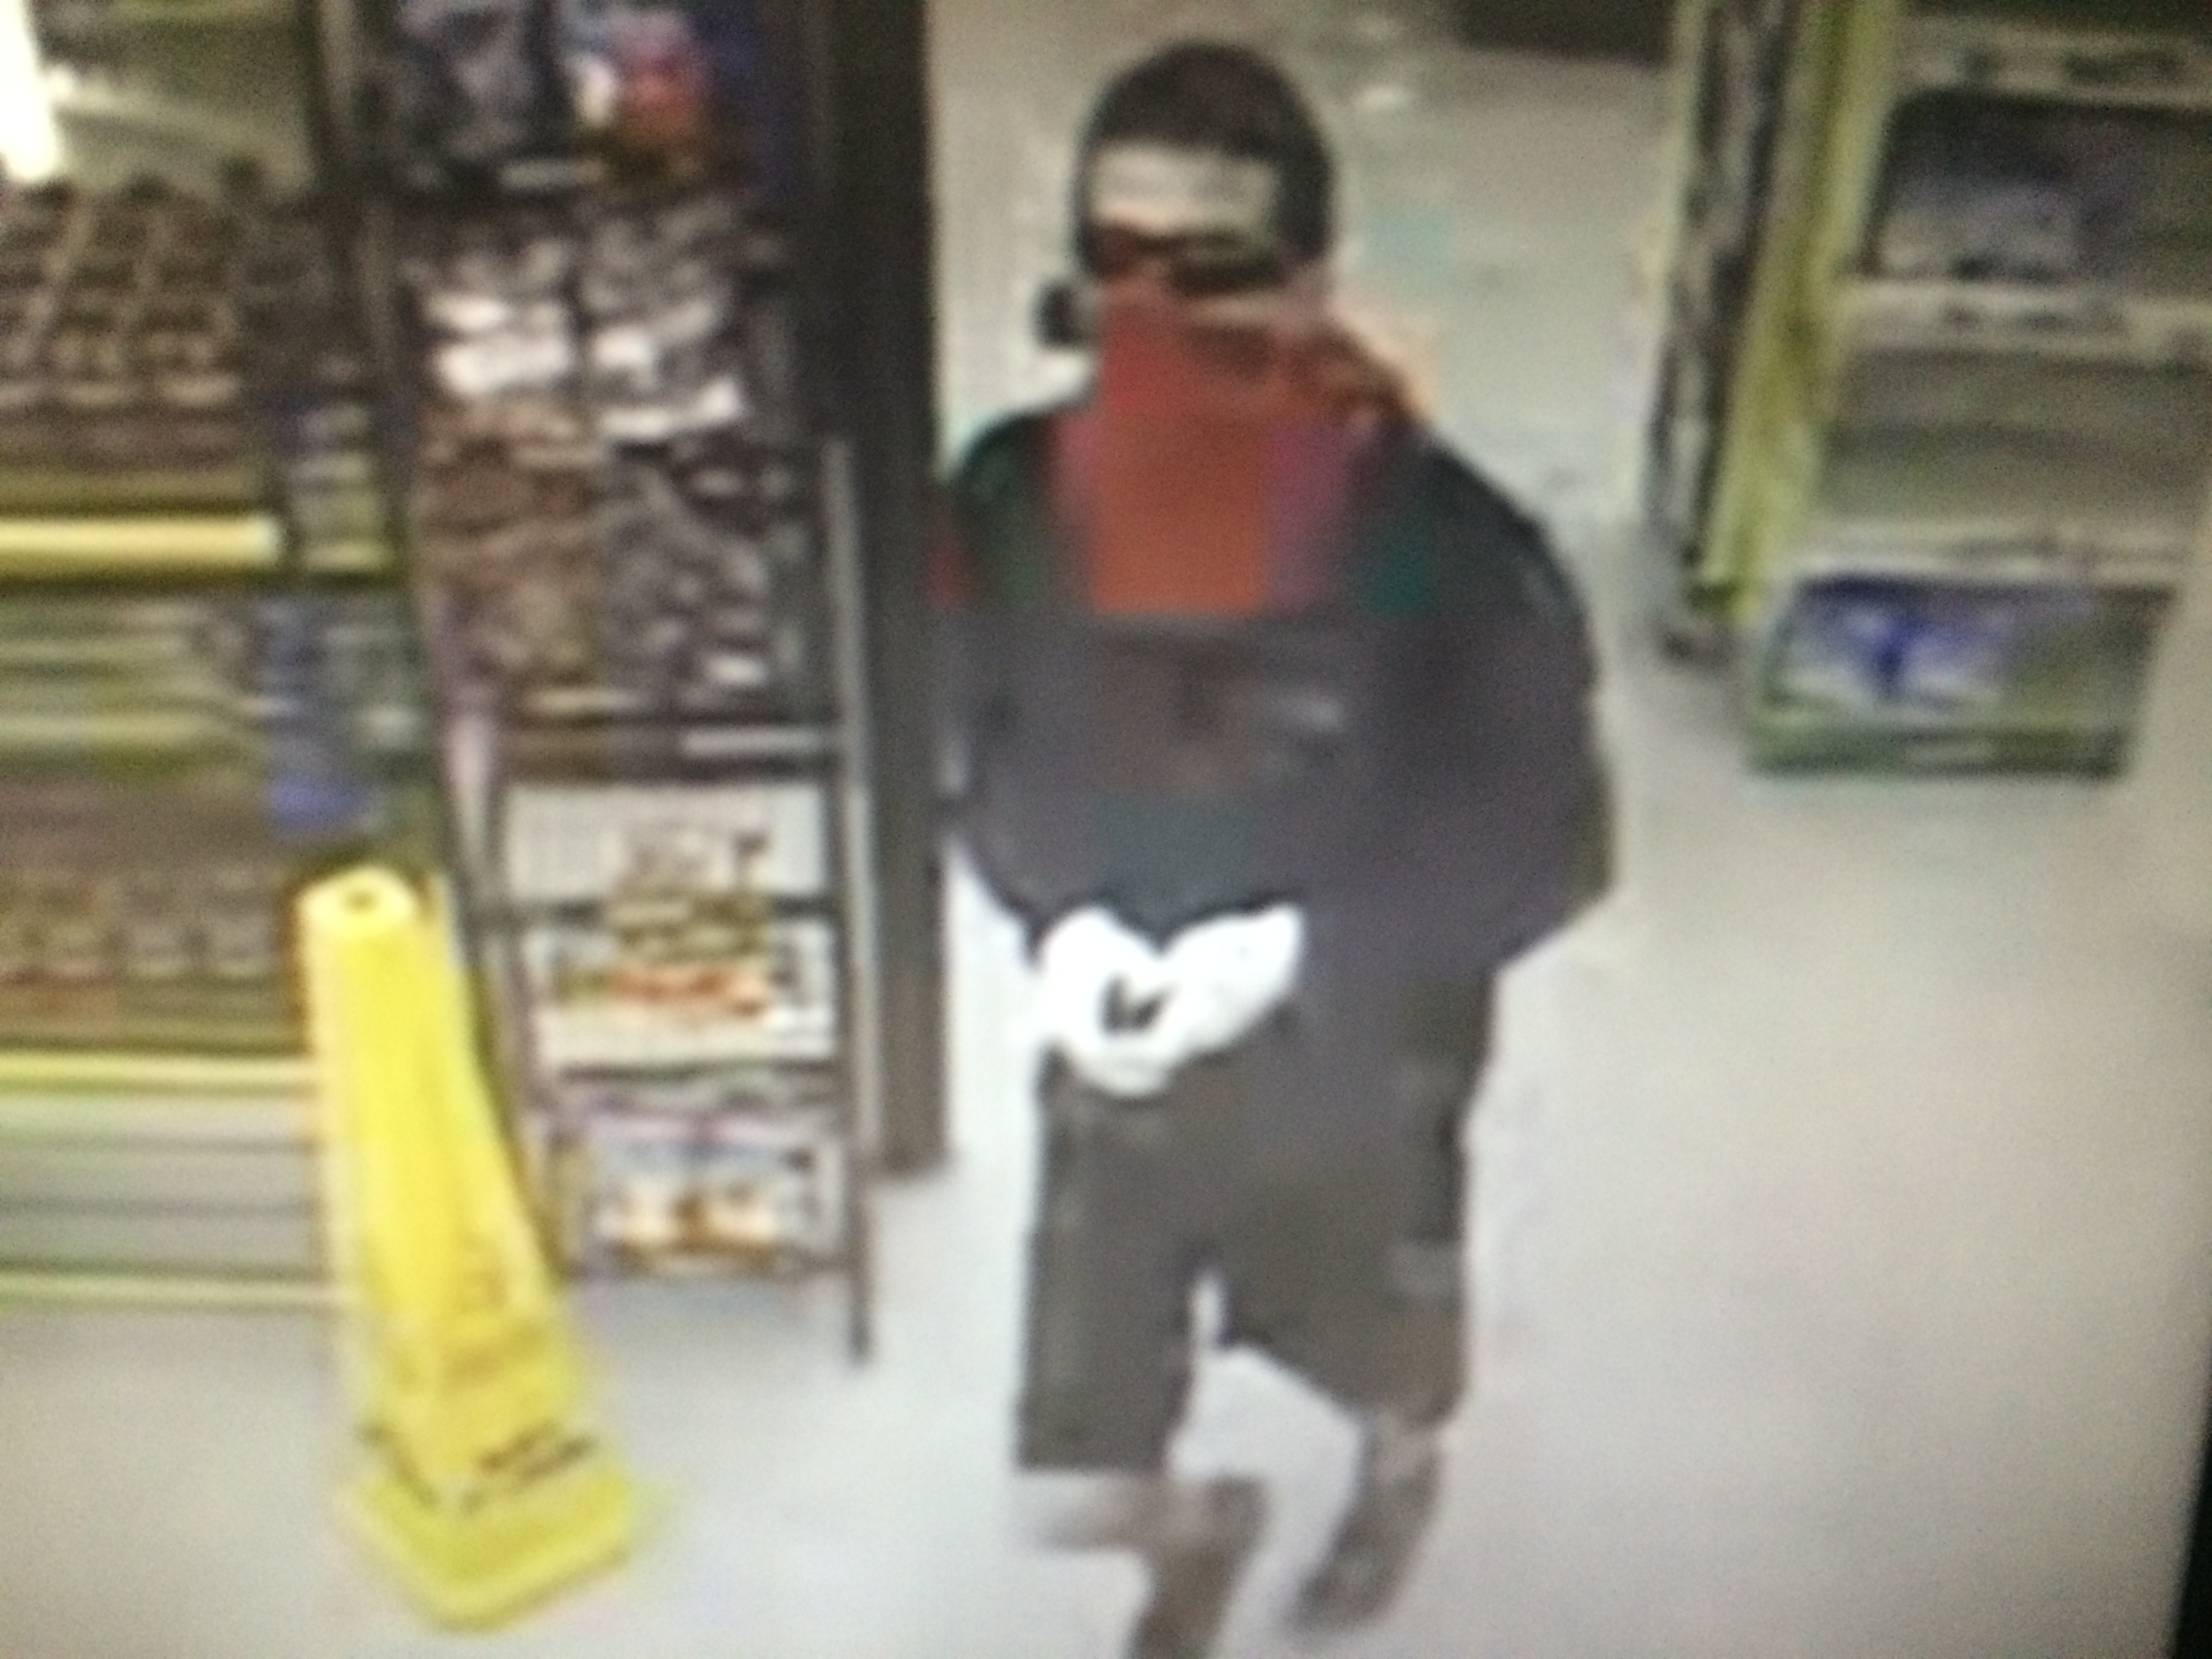 Police investigate Tuesday's robbery in Excelsior Springs